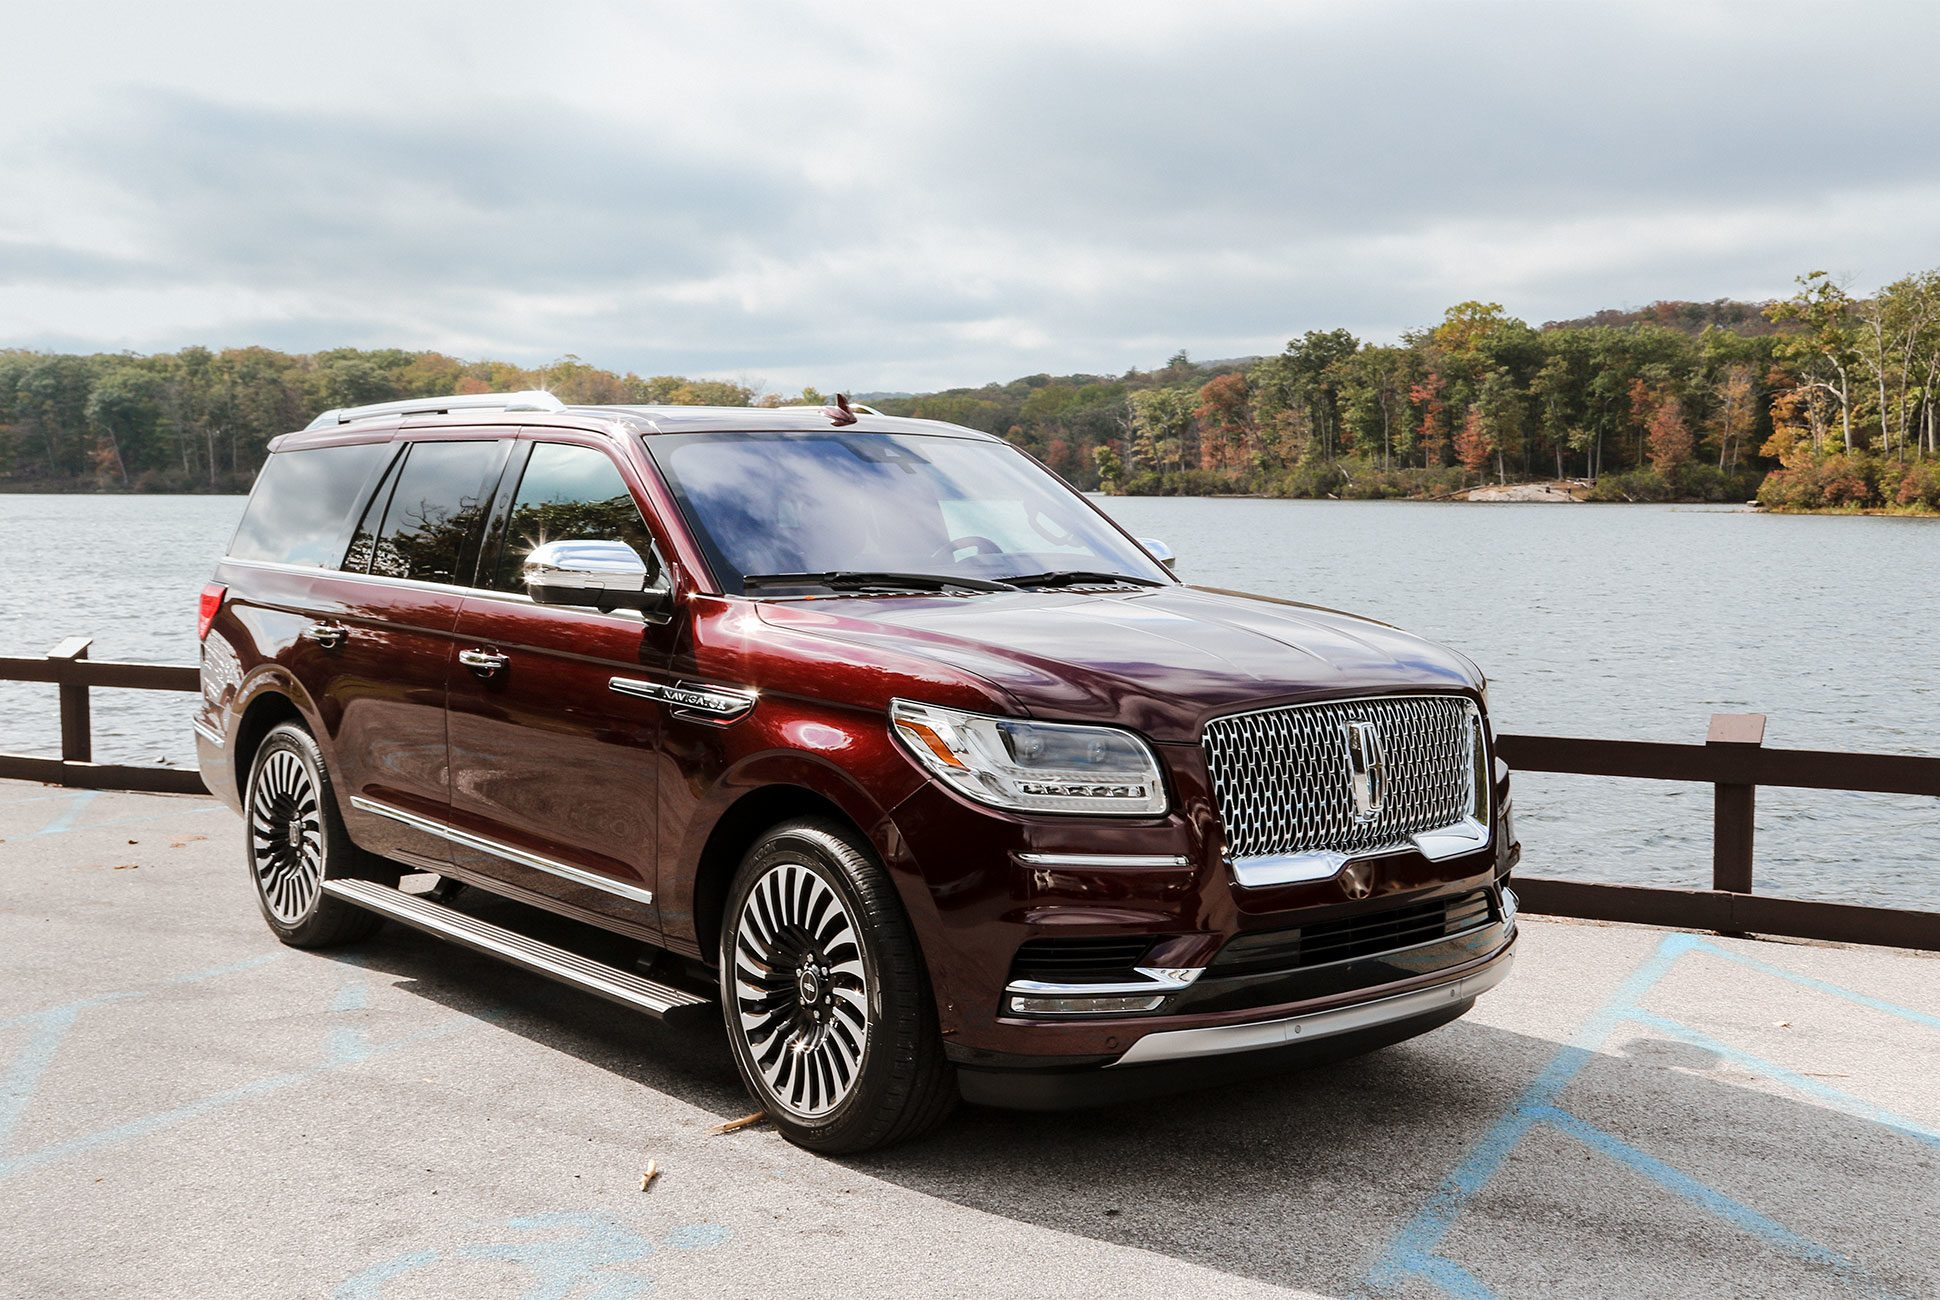 Luxury Suvs Vehicle: Large Luxury SUV Sales In America – March 2018